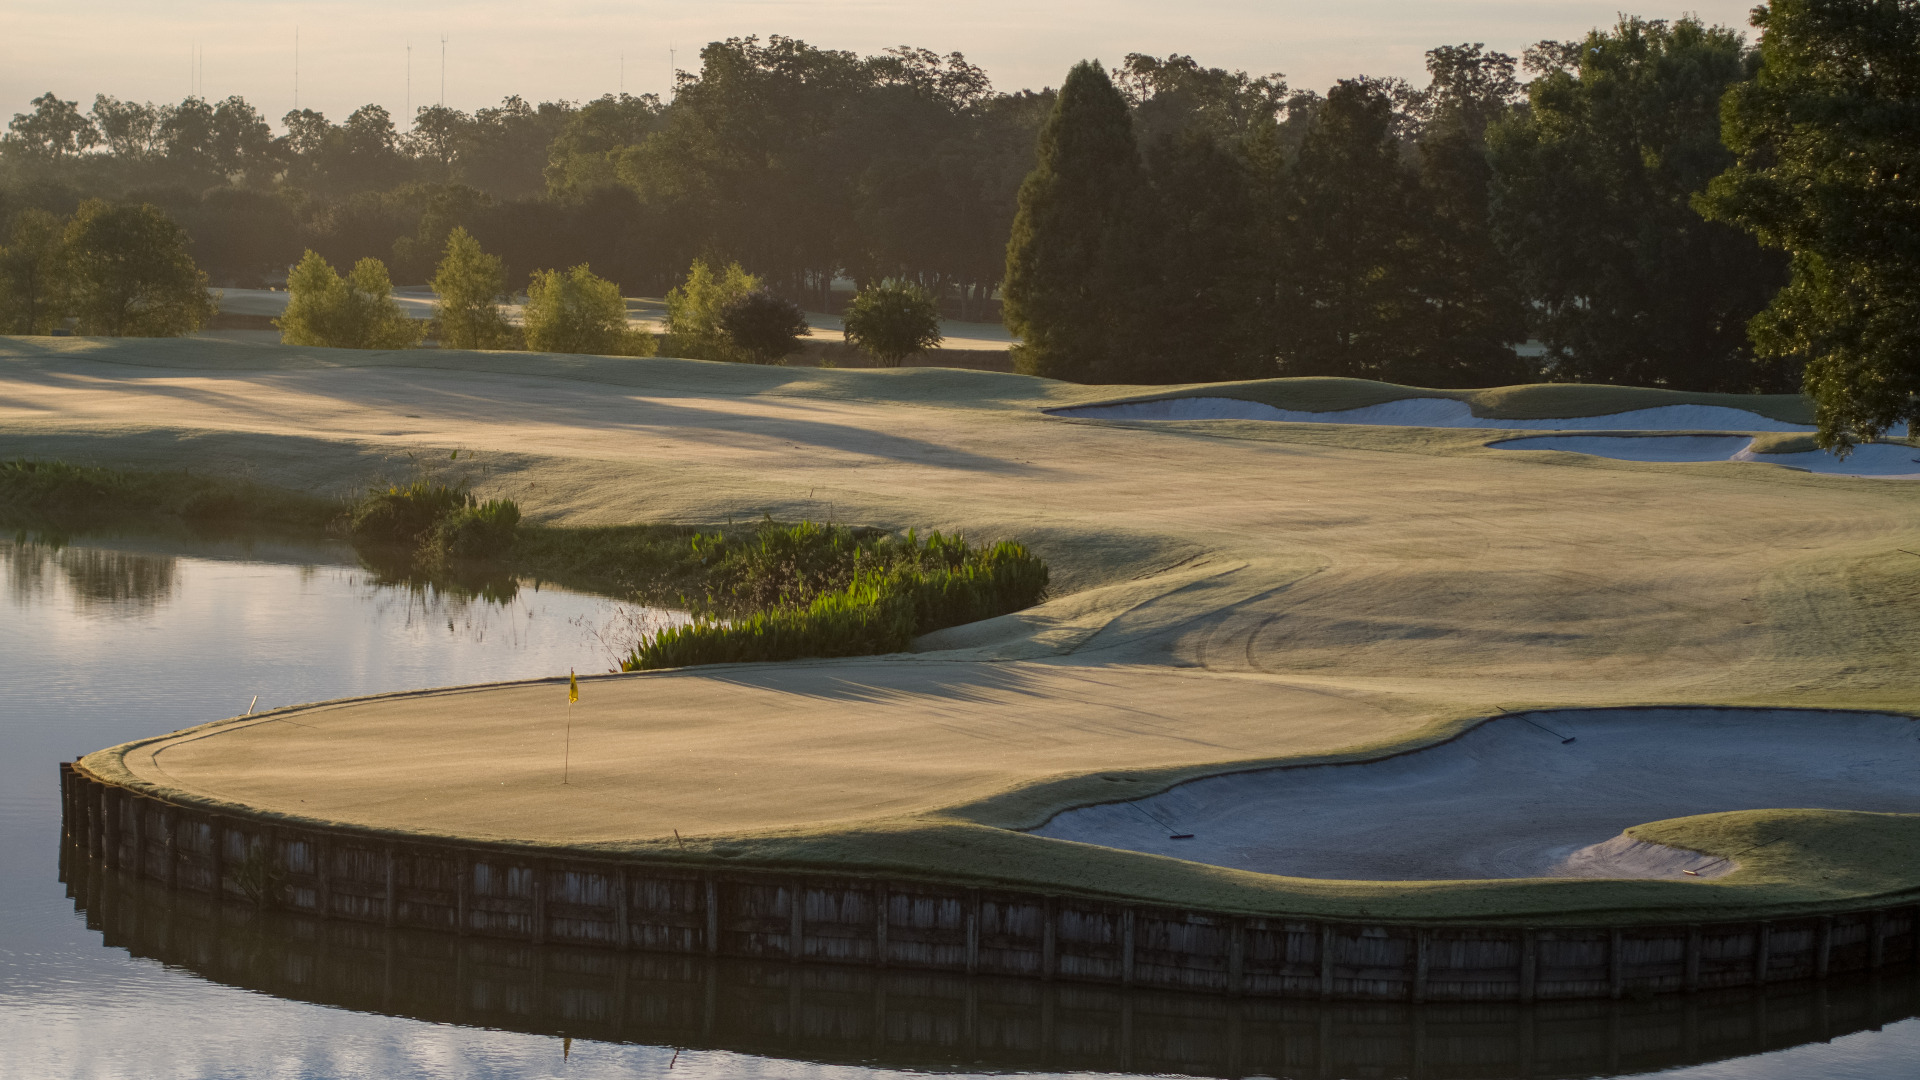 Sand dunes touch the water's edge at Shadow Hawk Golf Club